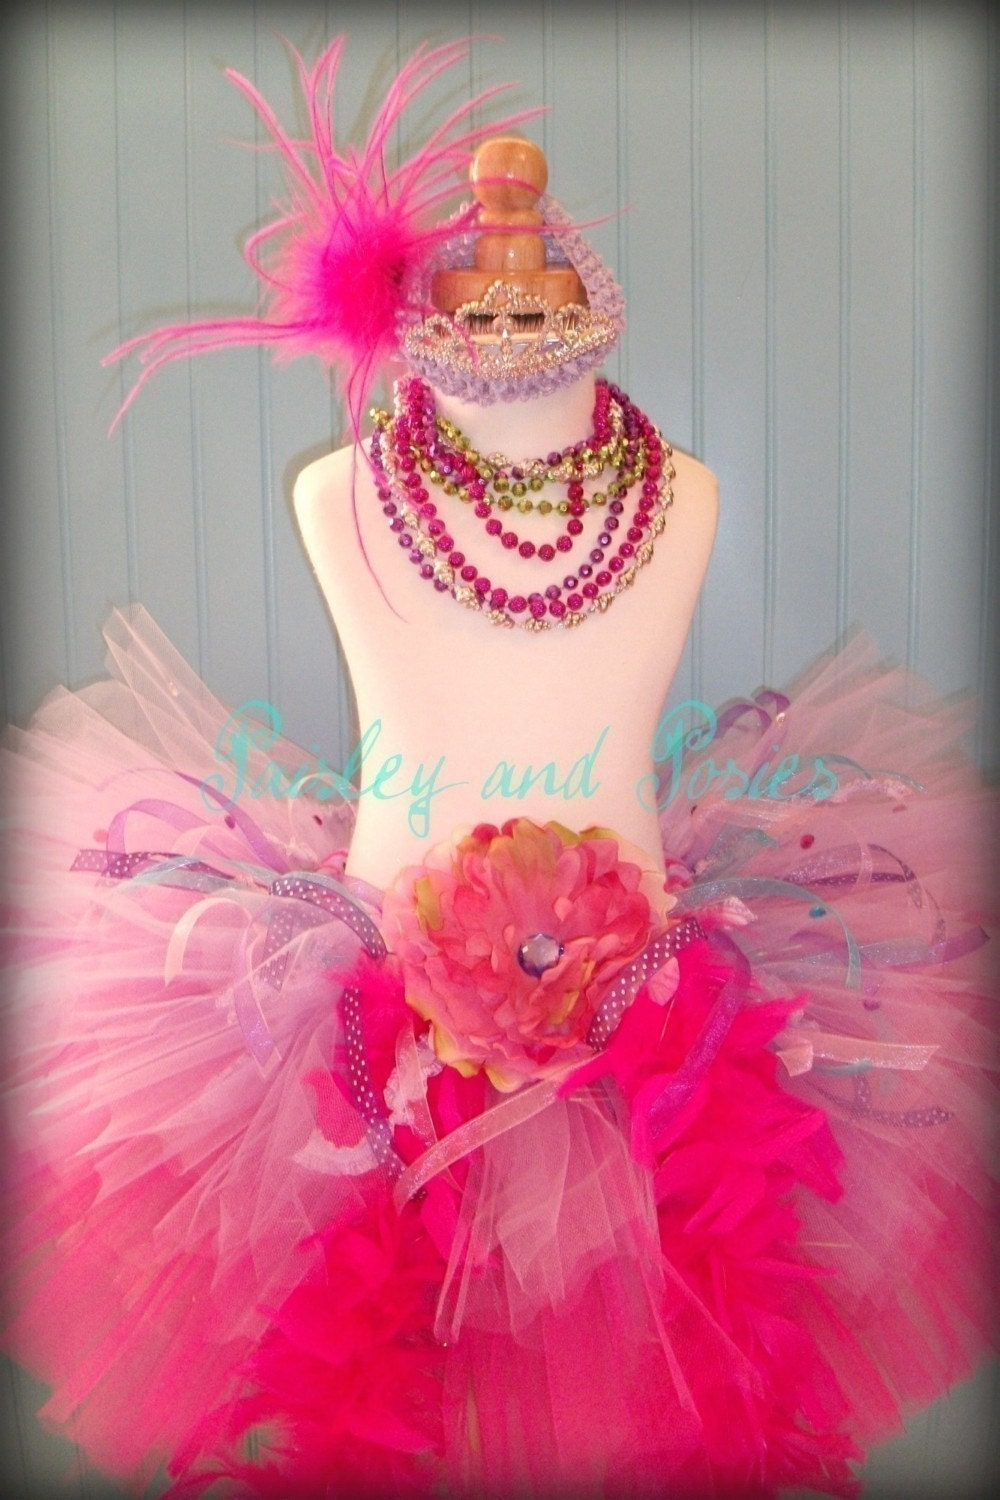 ALL NEW - Fancy Nancy Inspired Dress Up Tutu - Sizes Newborn up to 6 - Includes Headband and Tiarra - Customizable Colors - Great for Valentines Day Parties